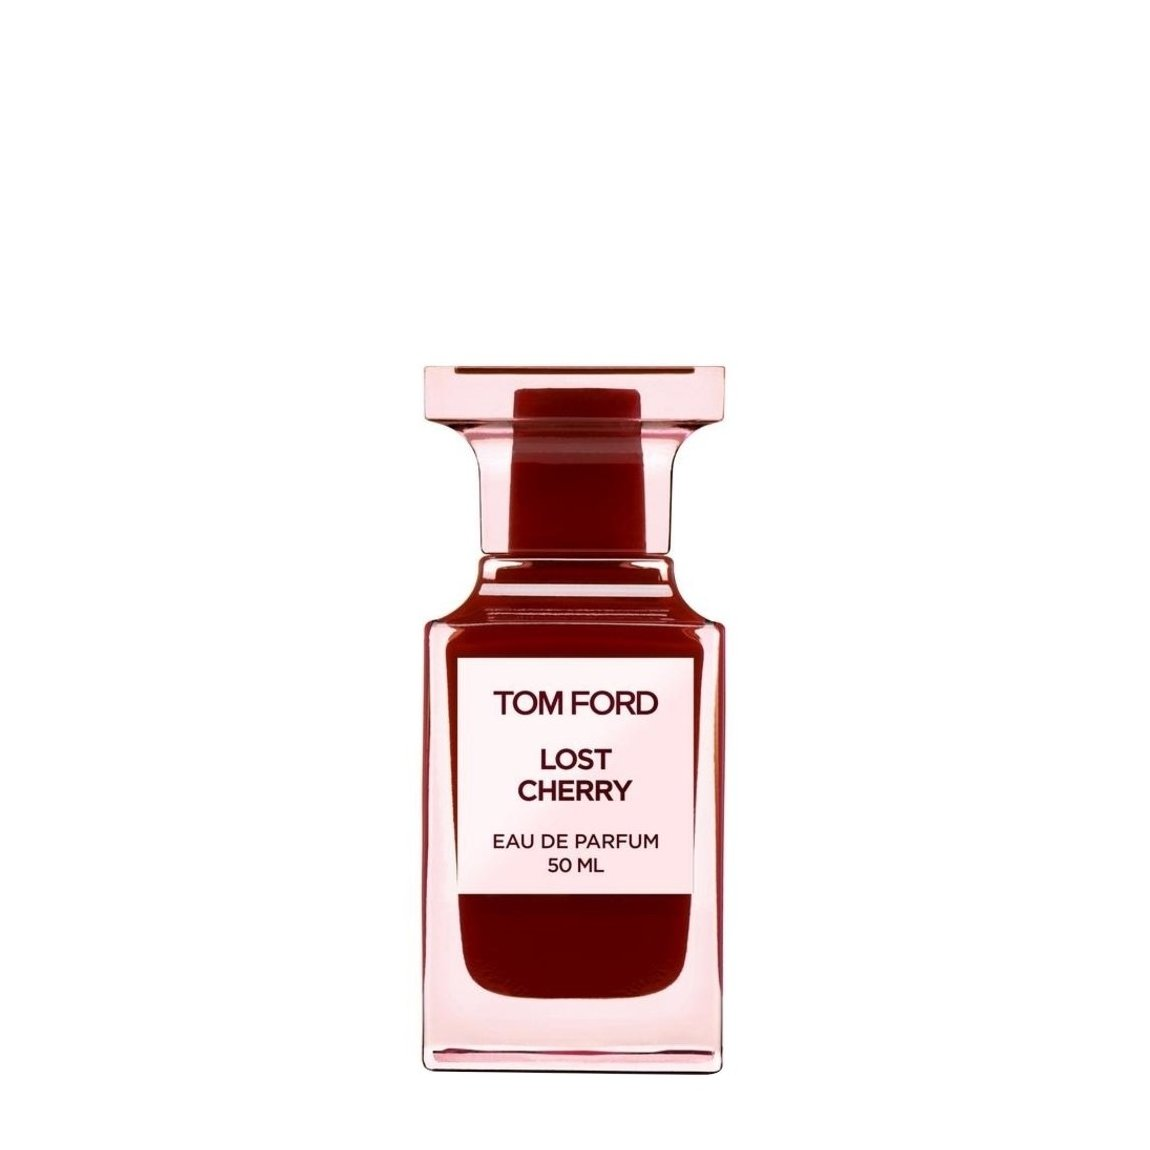 TOM FORD Lost Cherry product swatch.